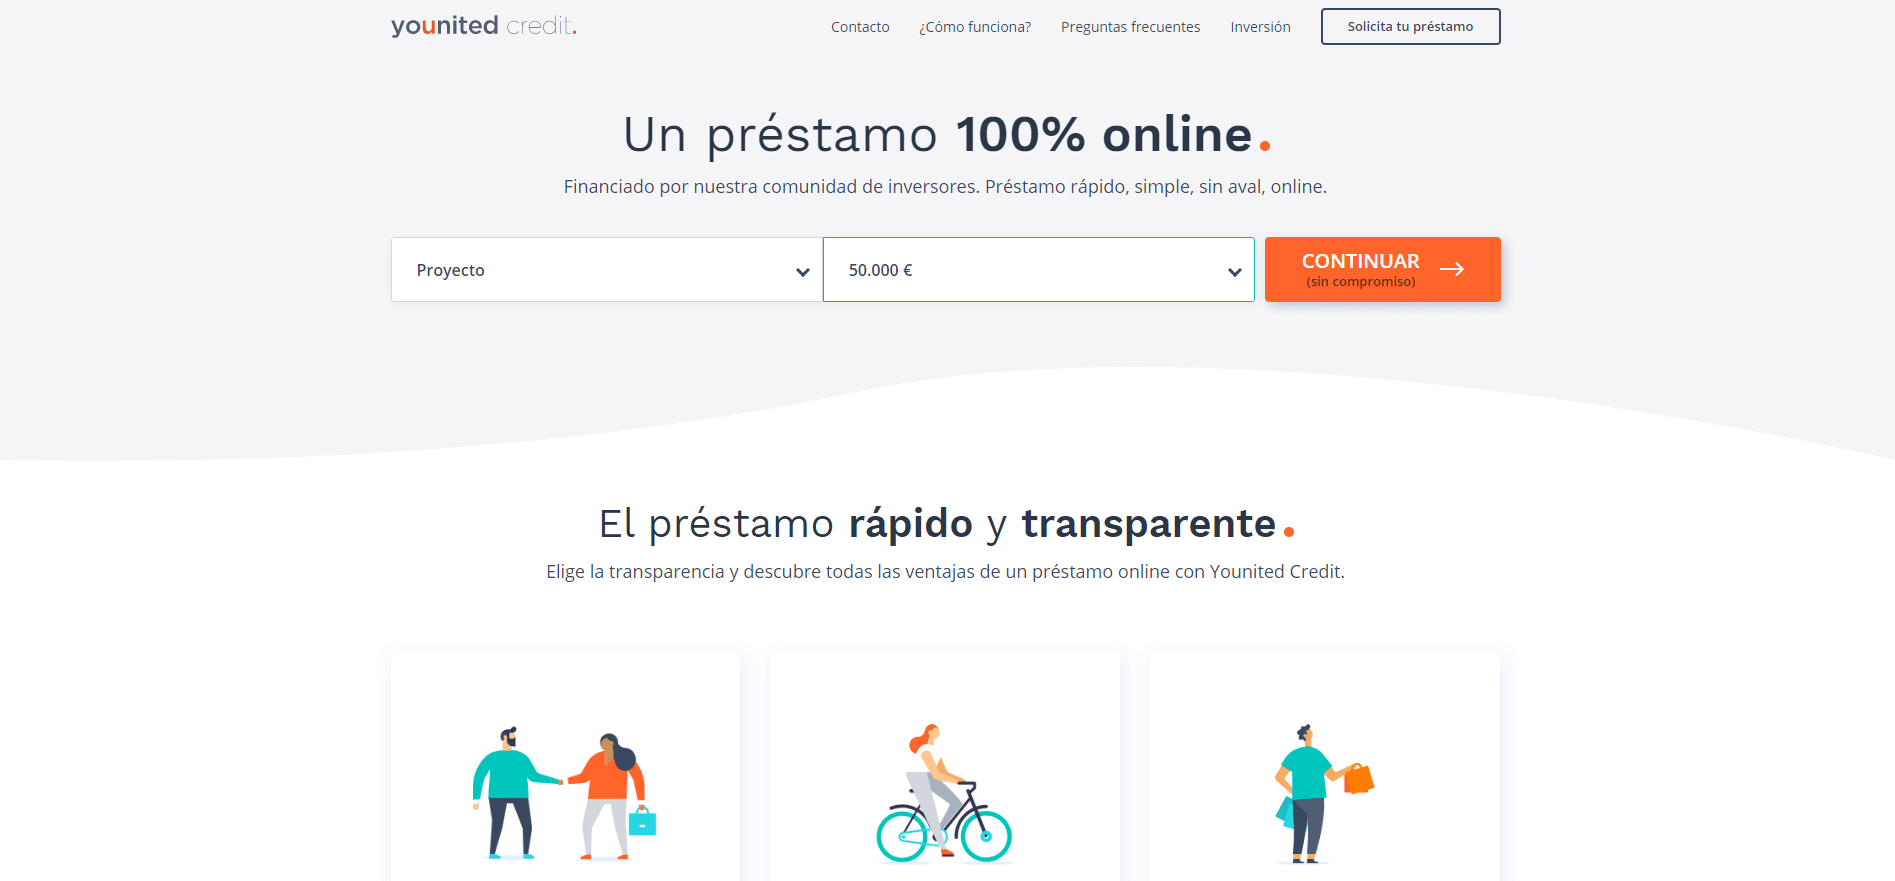 Younited Credit información y solicitud de financiación online las 24 horas hasta 50.000 € rápido, simple y sin aval